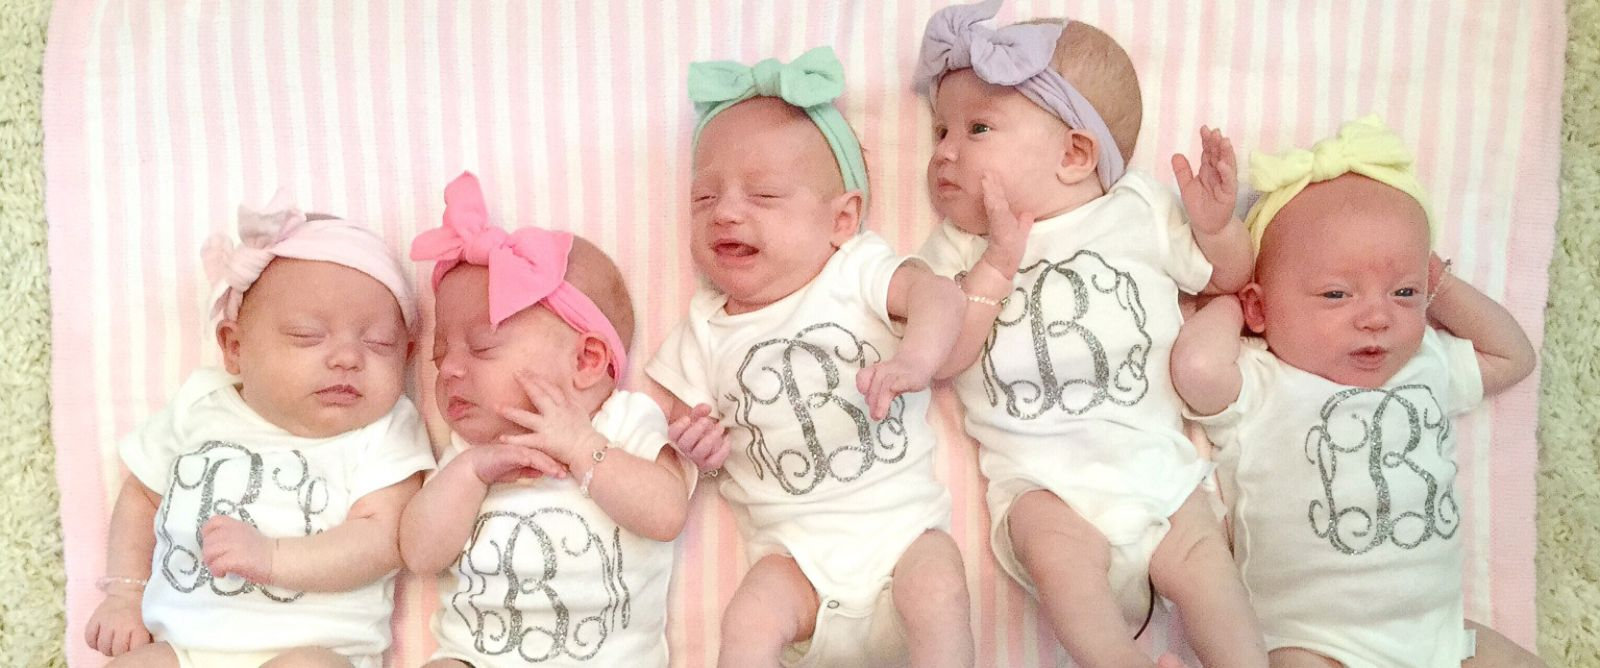 Last Of All Girl Busby Quintuplets Joins Sisters At Home